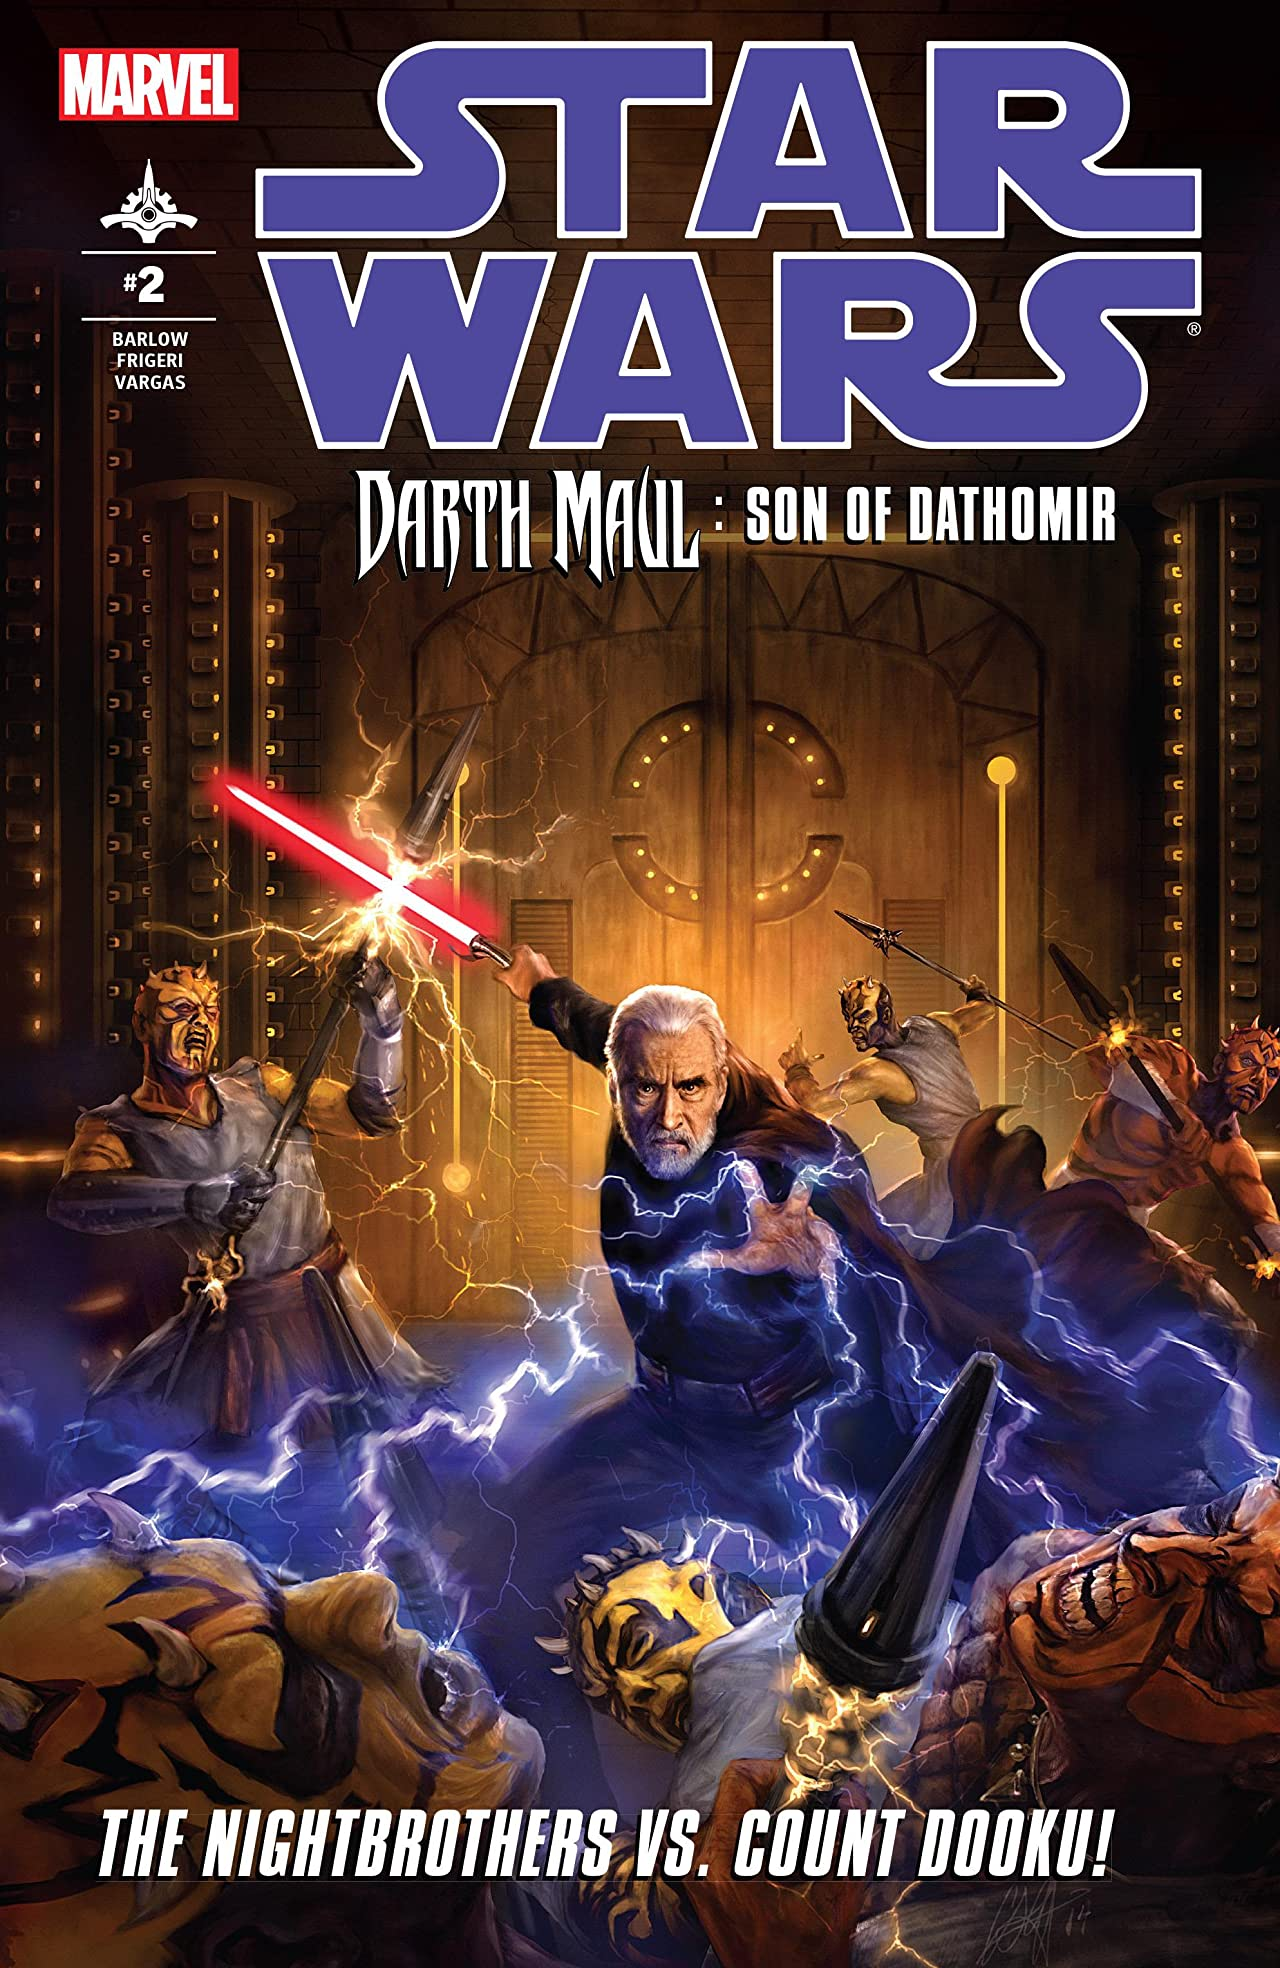 Star Wars: Darth Maul - Son of Dathomir (2014) #2 (of 4)